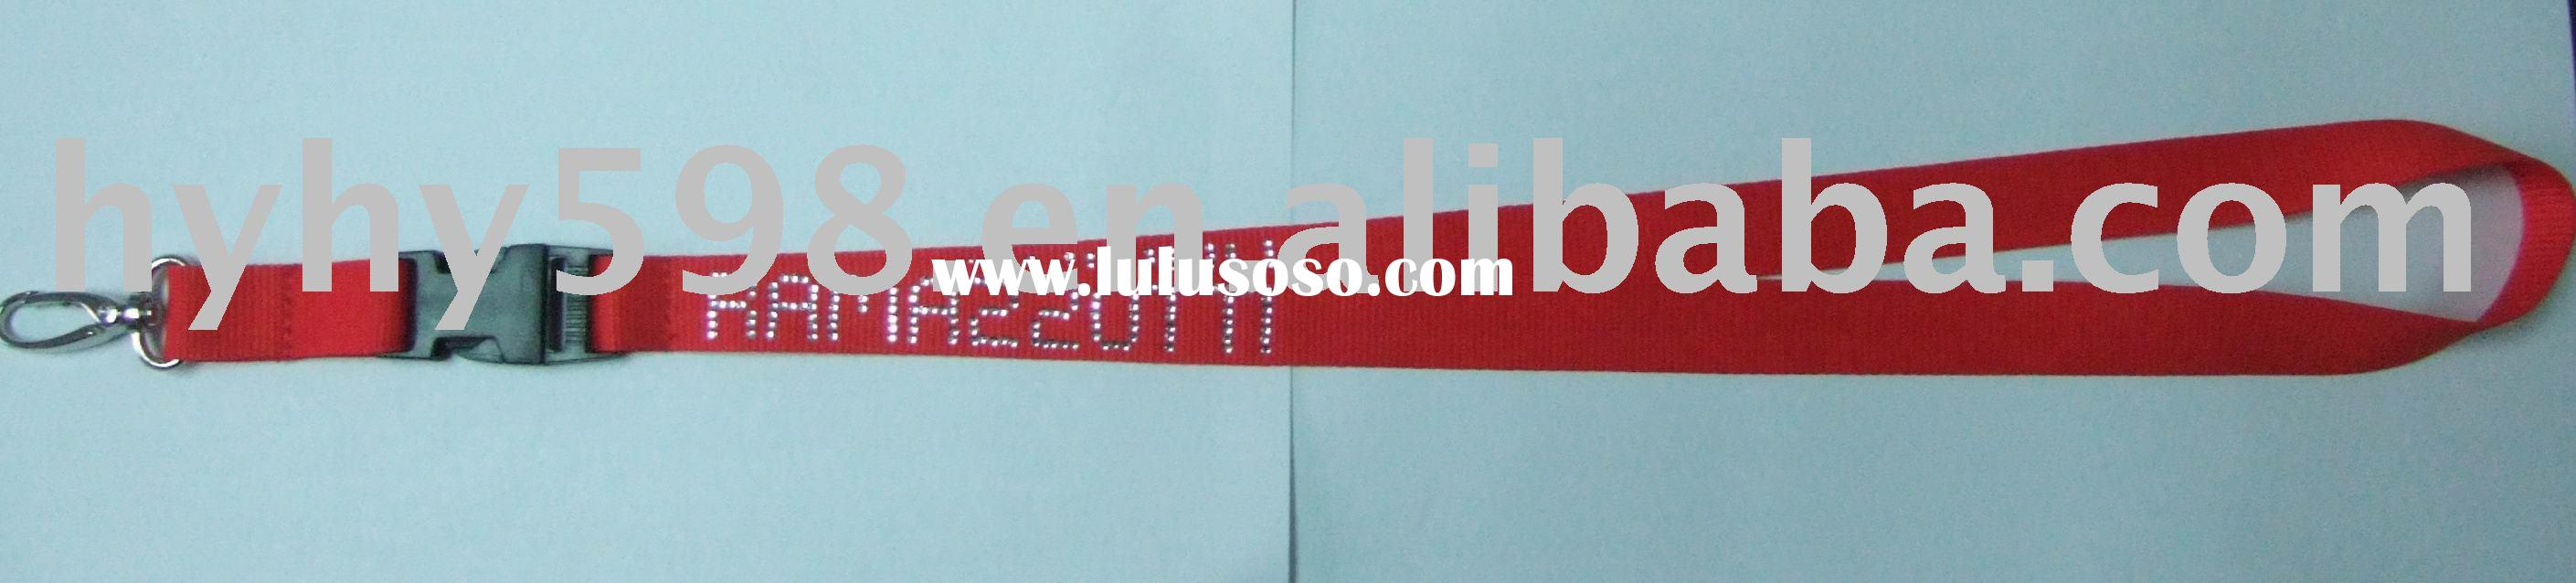 All kinds of lanyard, keychain, heat transfer the stone, with competitive price